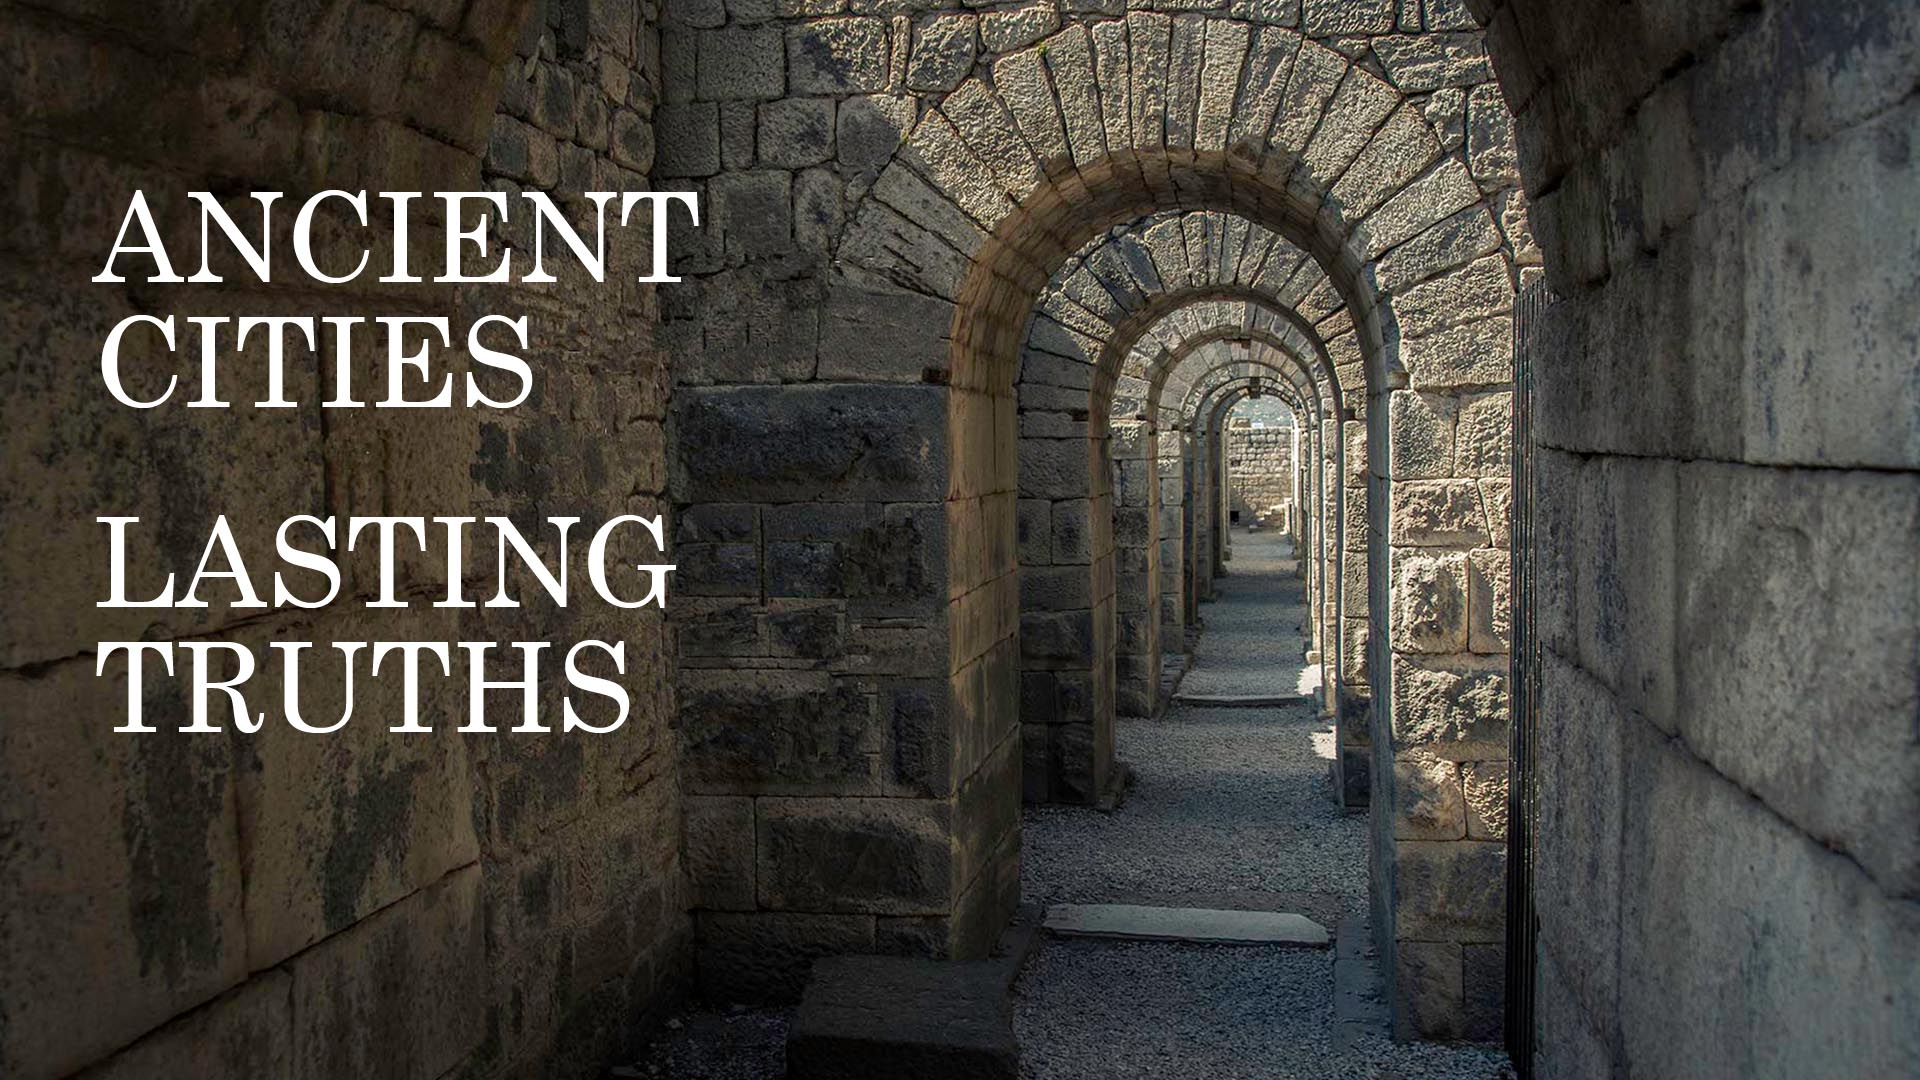 Ancient Cities Lasting Truths